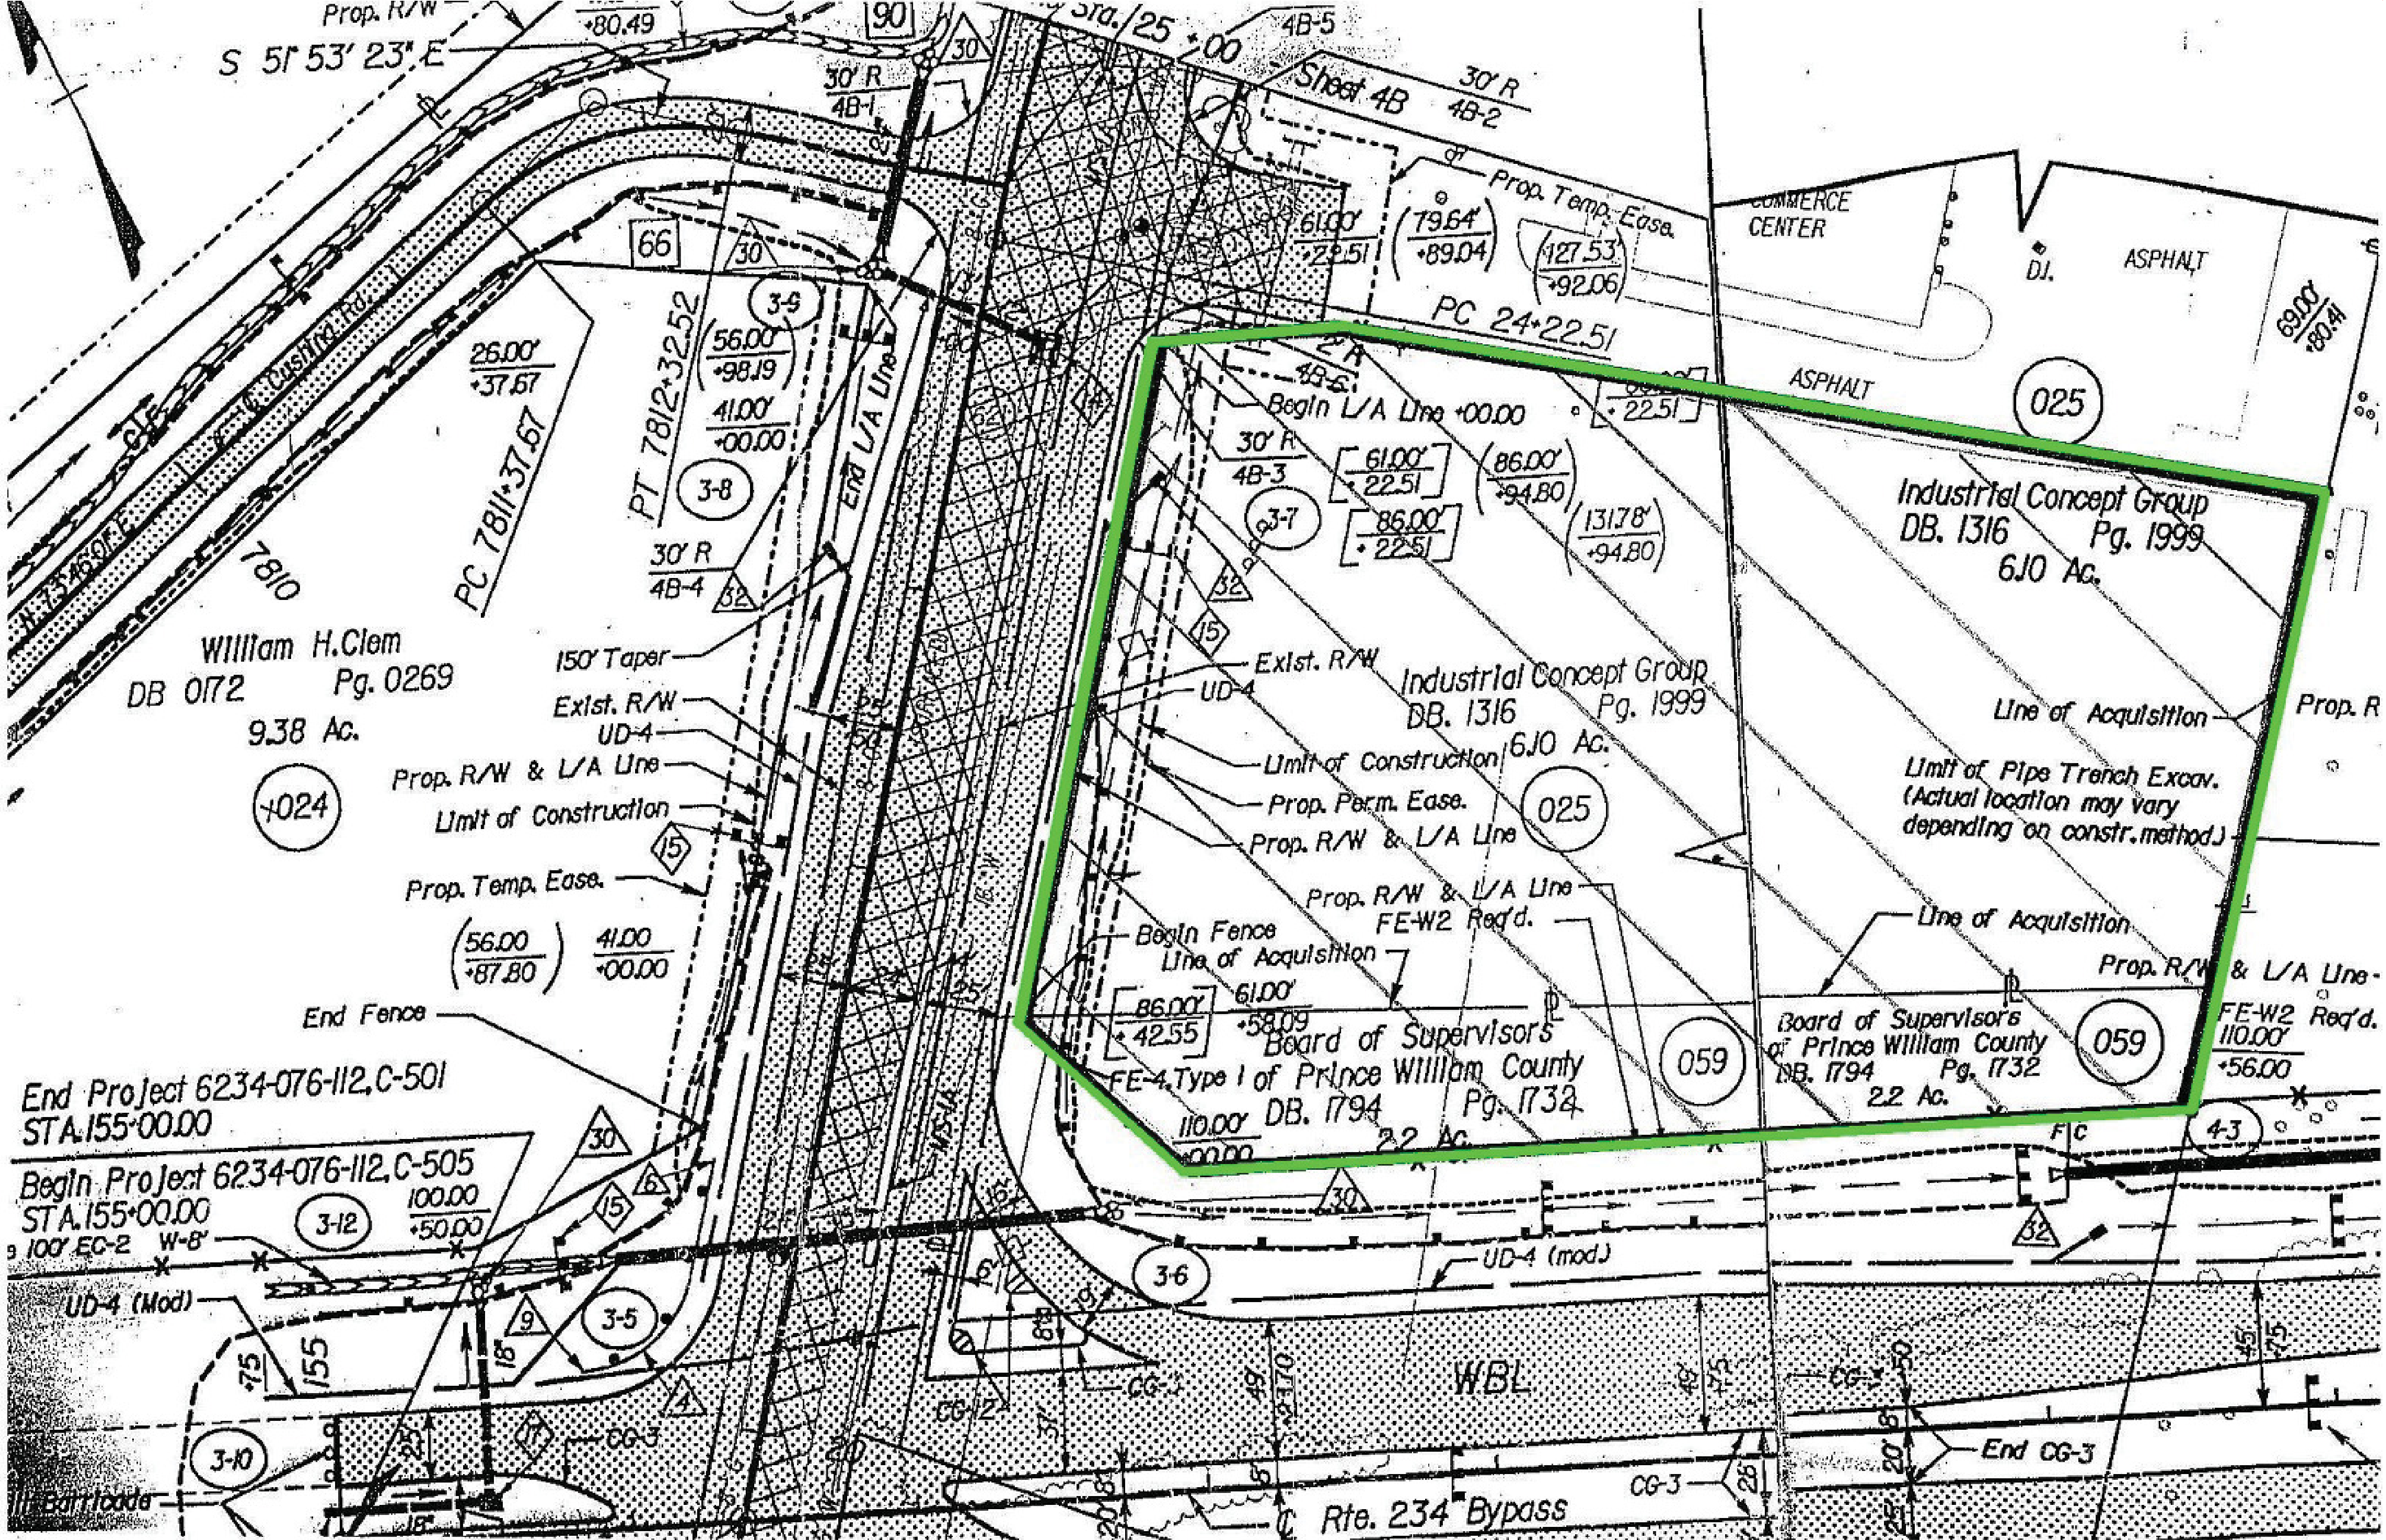 12017 Balls Ford Road: site plan